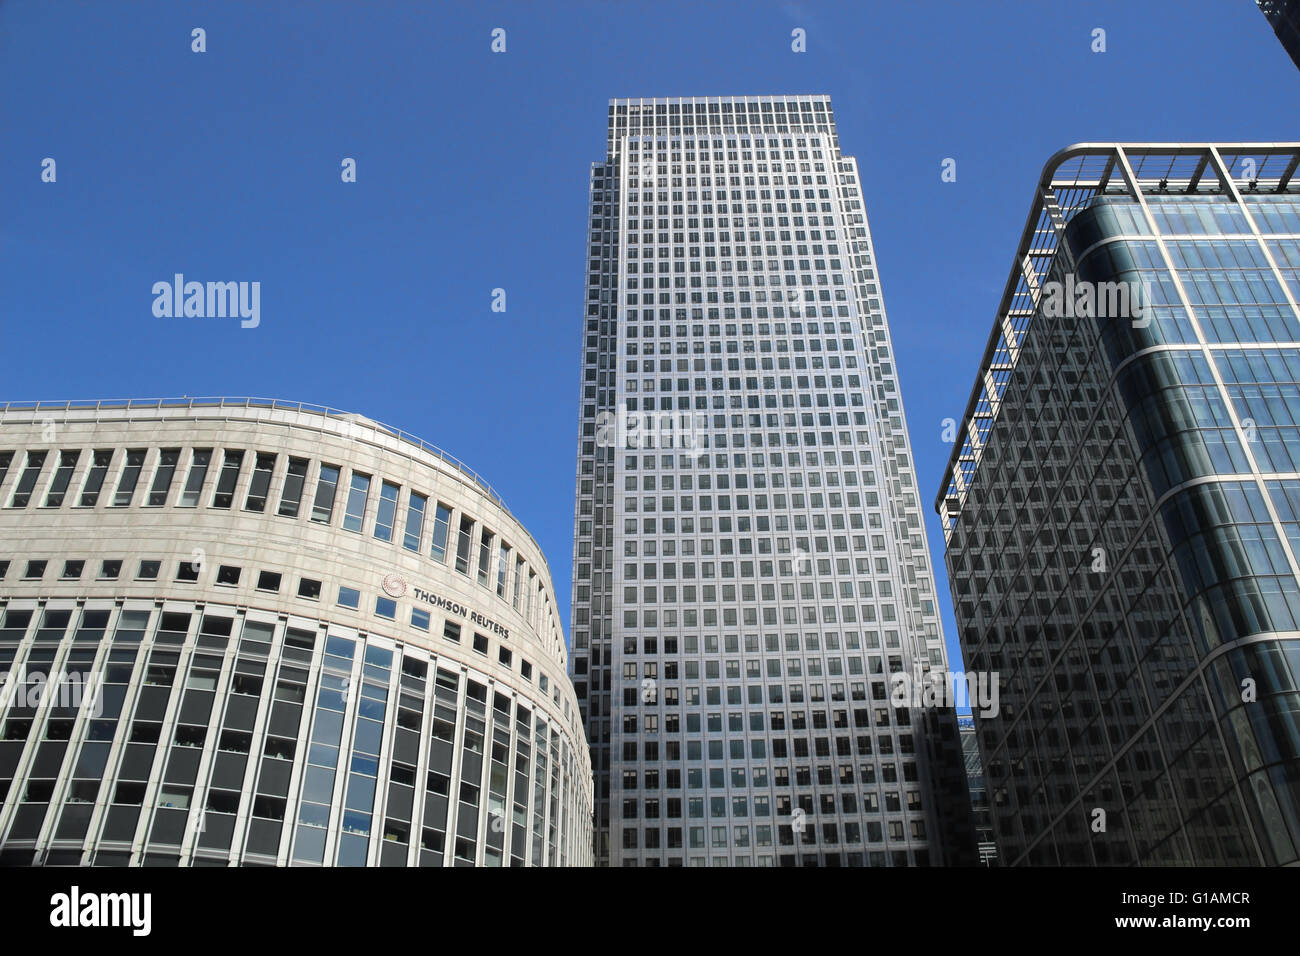 Canary wharf Thompson Reuters office London England Modern office buildings Stock Photo